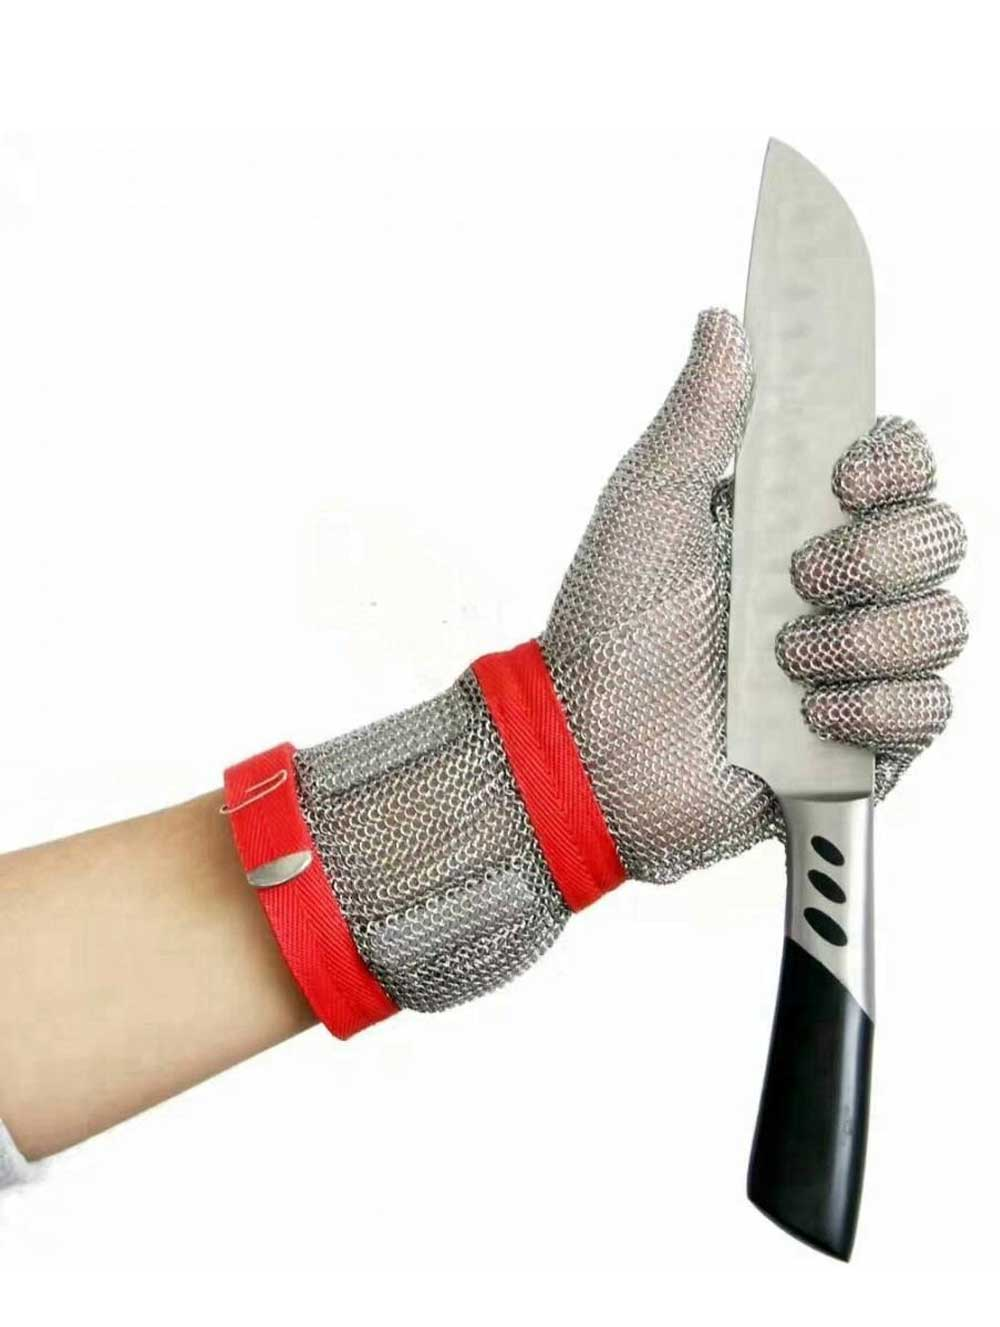 MK1101-Five Finger Wrist Ring Mesh Glove With Extended Textile Cuff